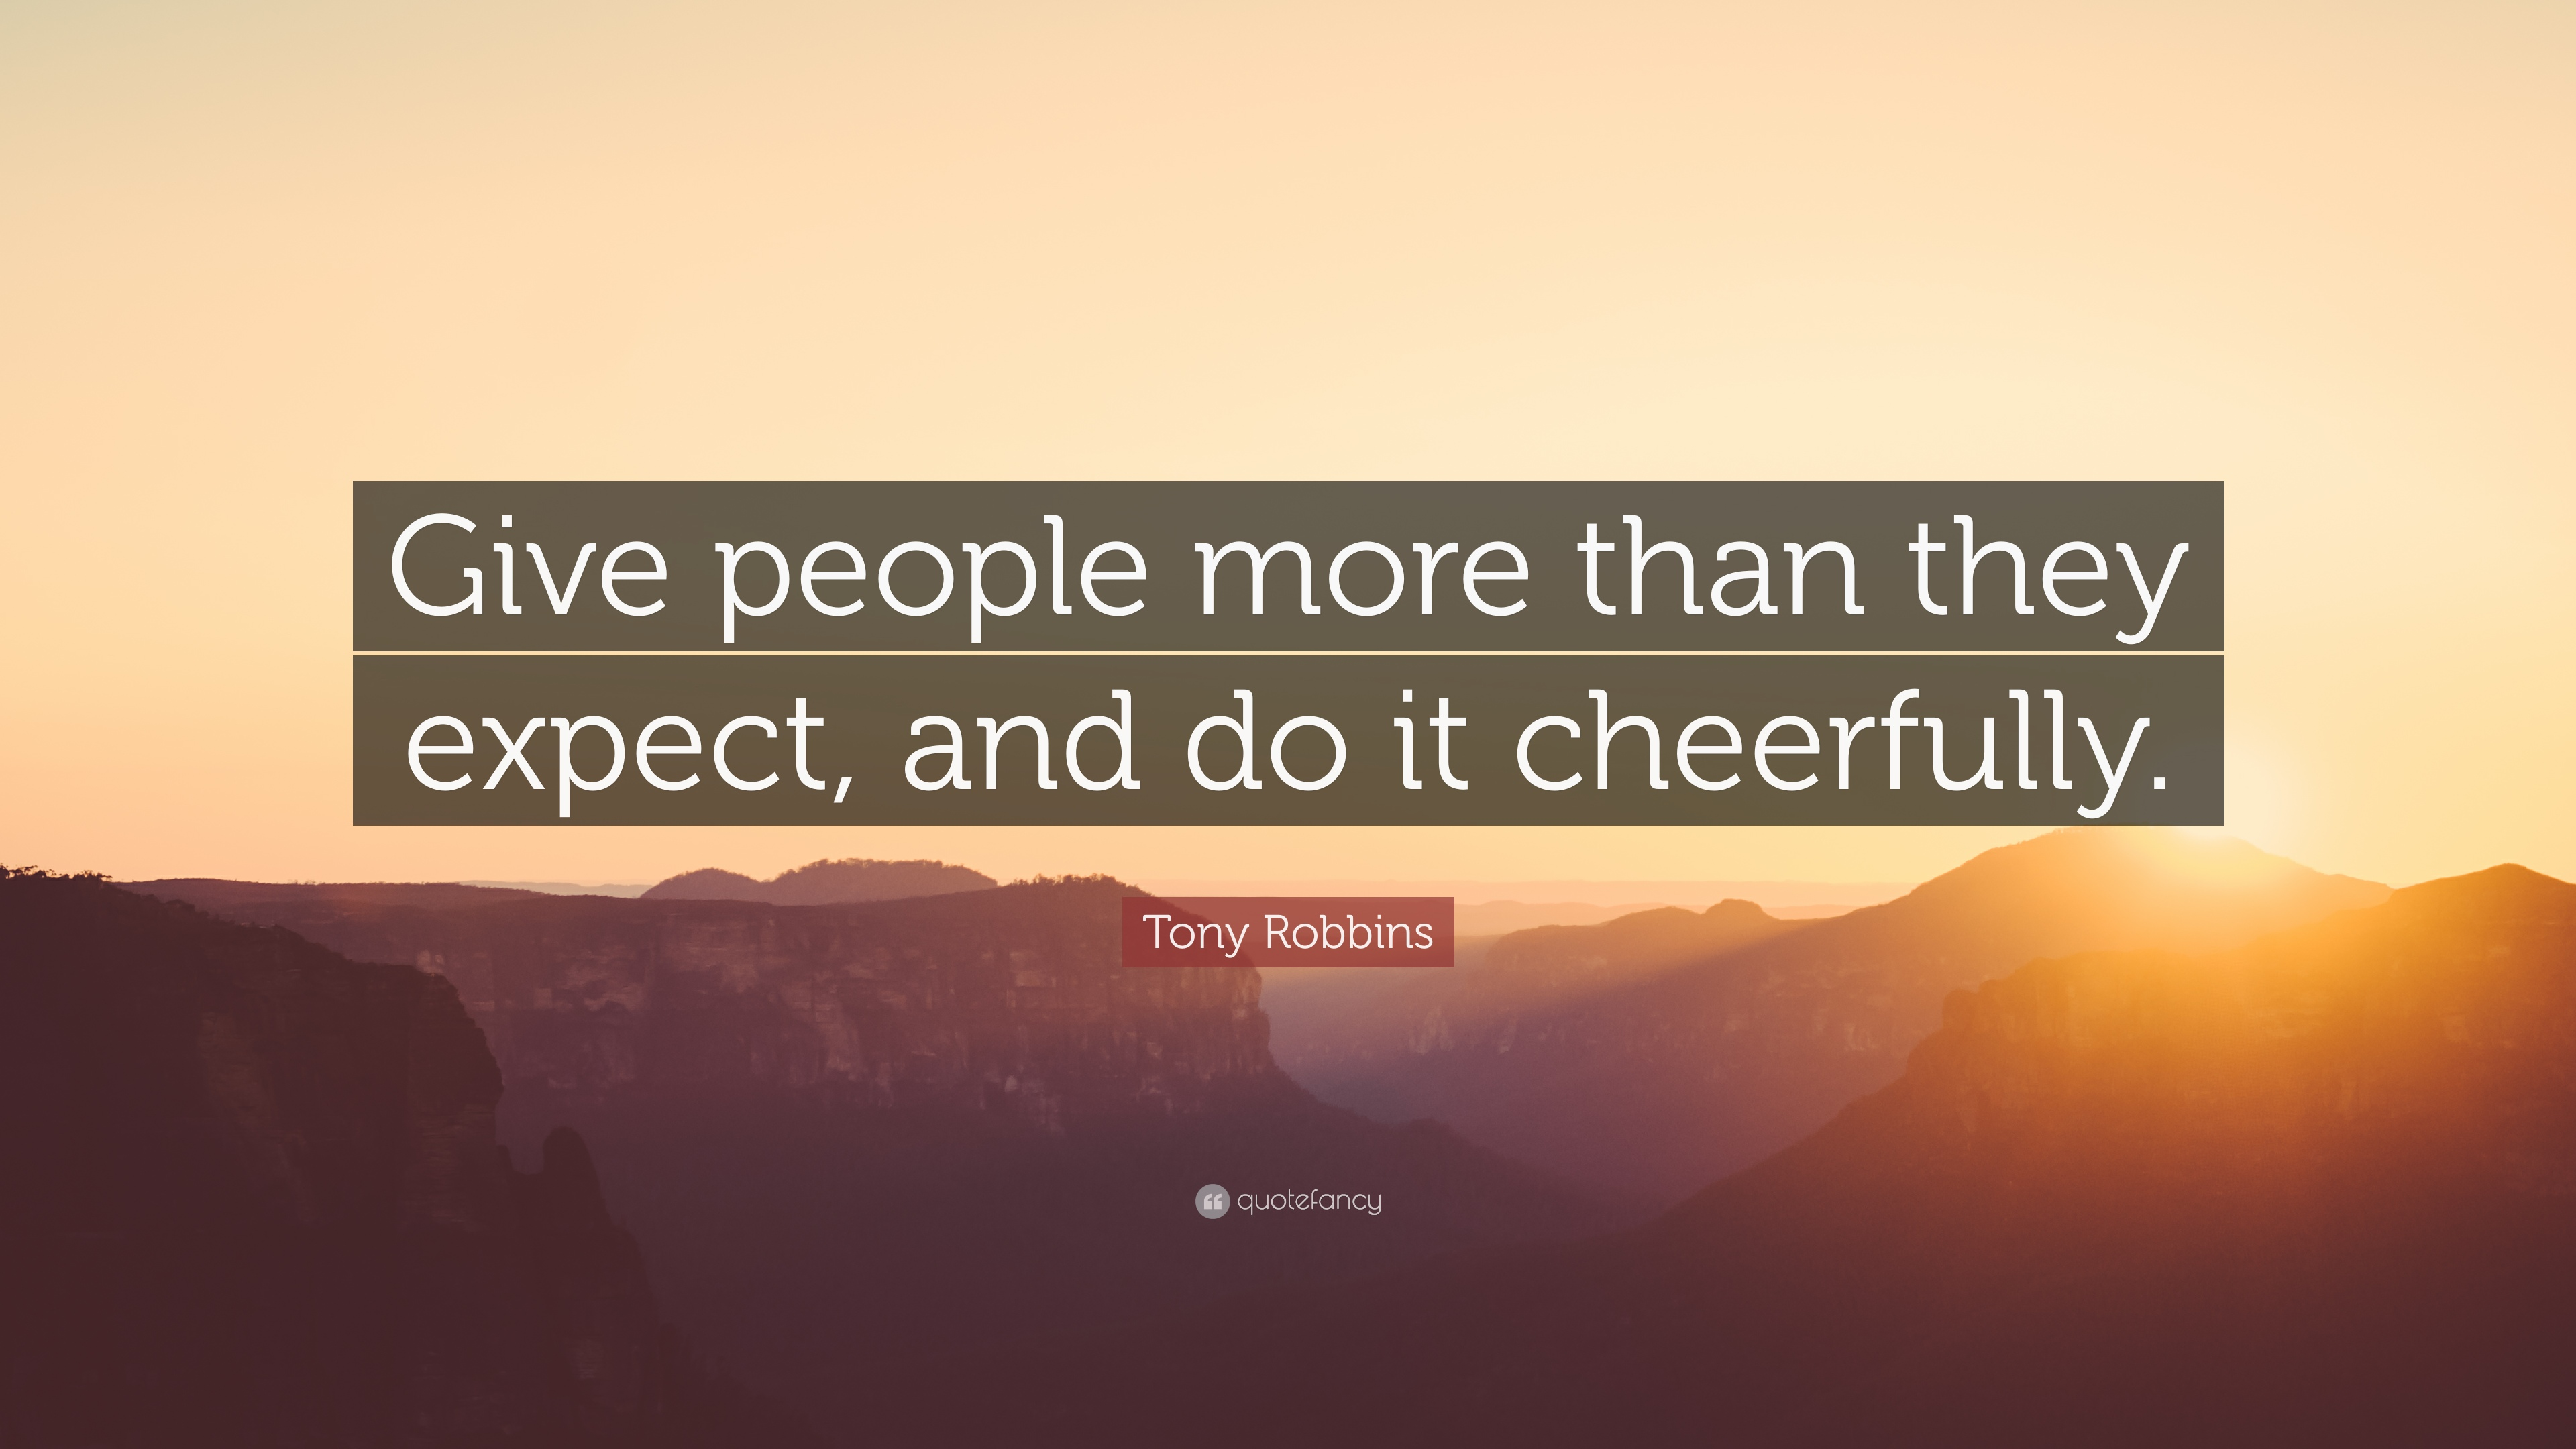 237653-Tony-Robbins-Quote-Give-people-more-than-they-expect-and-do-it